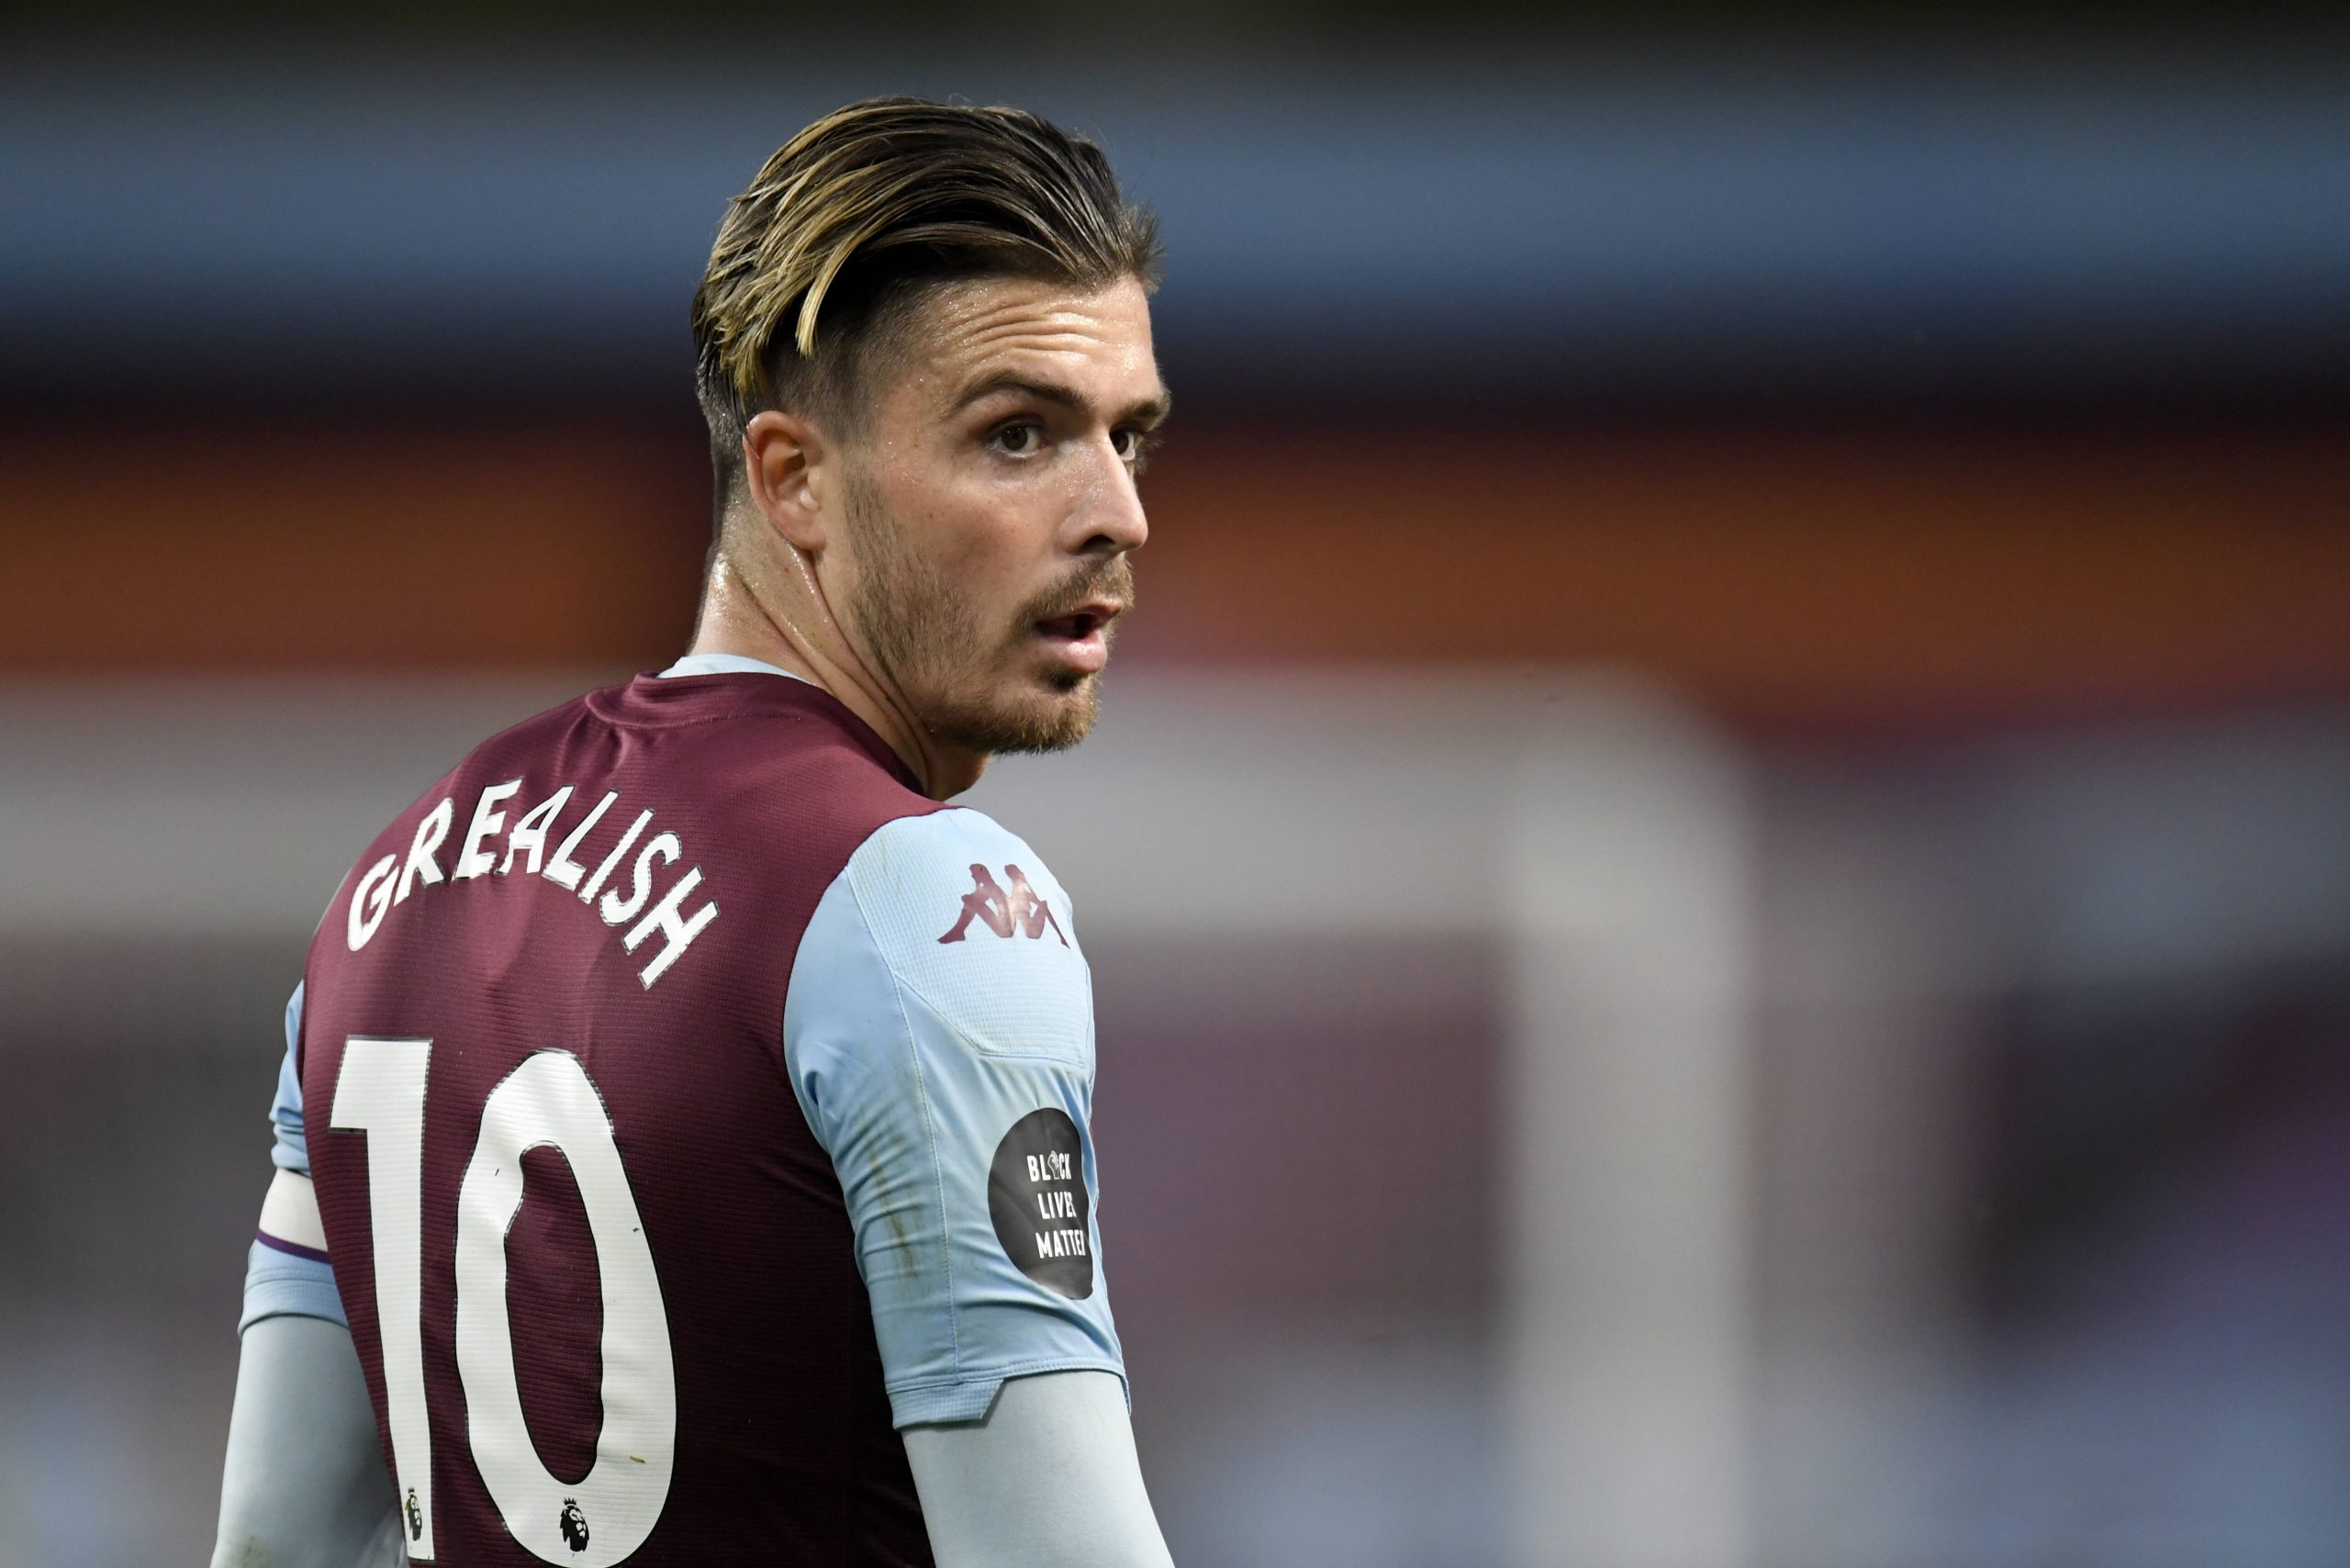 Jack Grealish, le milieu offensif d'Aston Villa